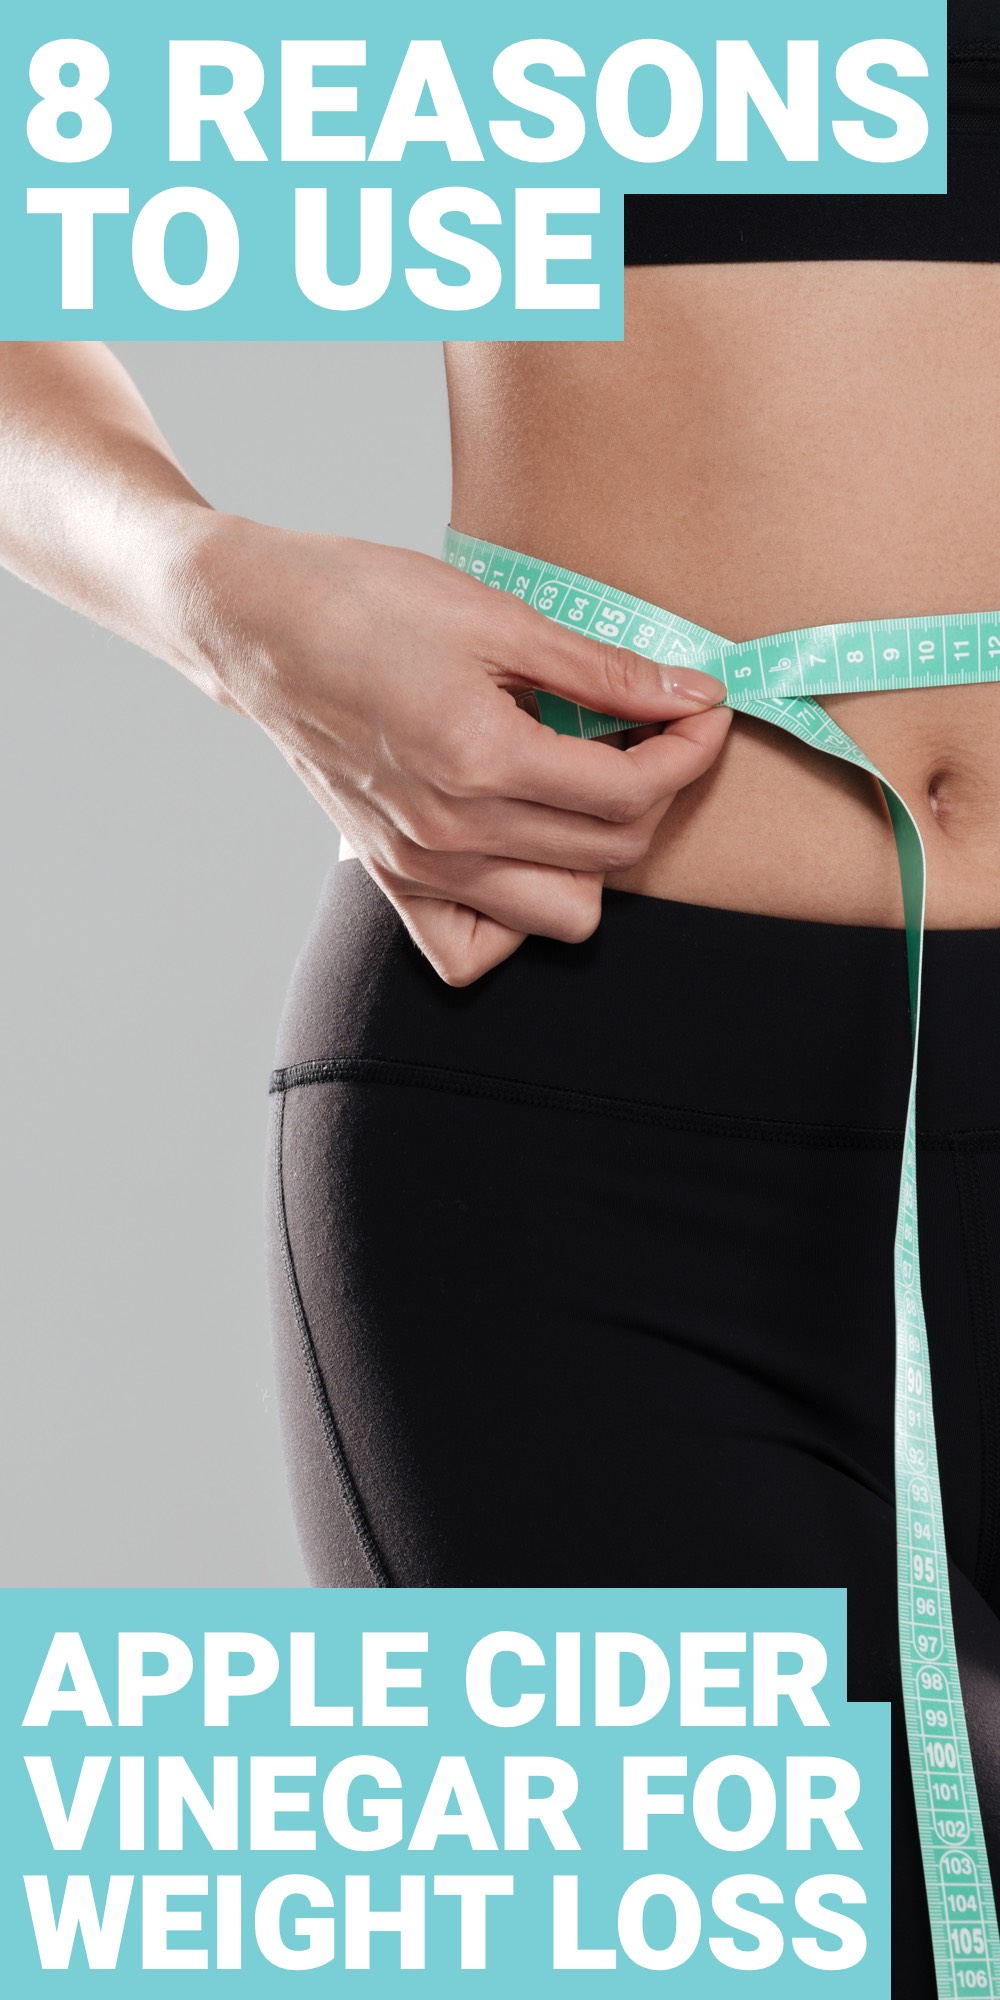 Apple cider vinegar for weight loss is great. Here are 8 reasons why you should use apple cider vinegar for weight loss.